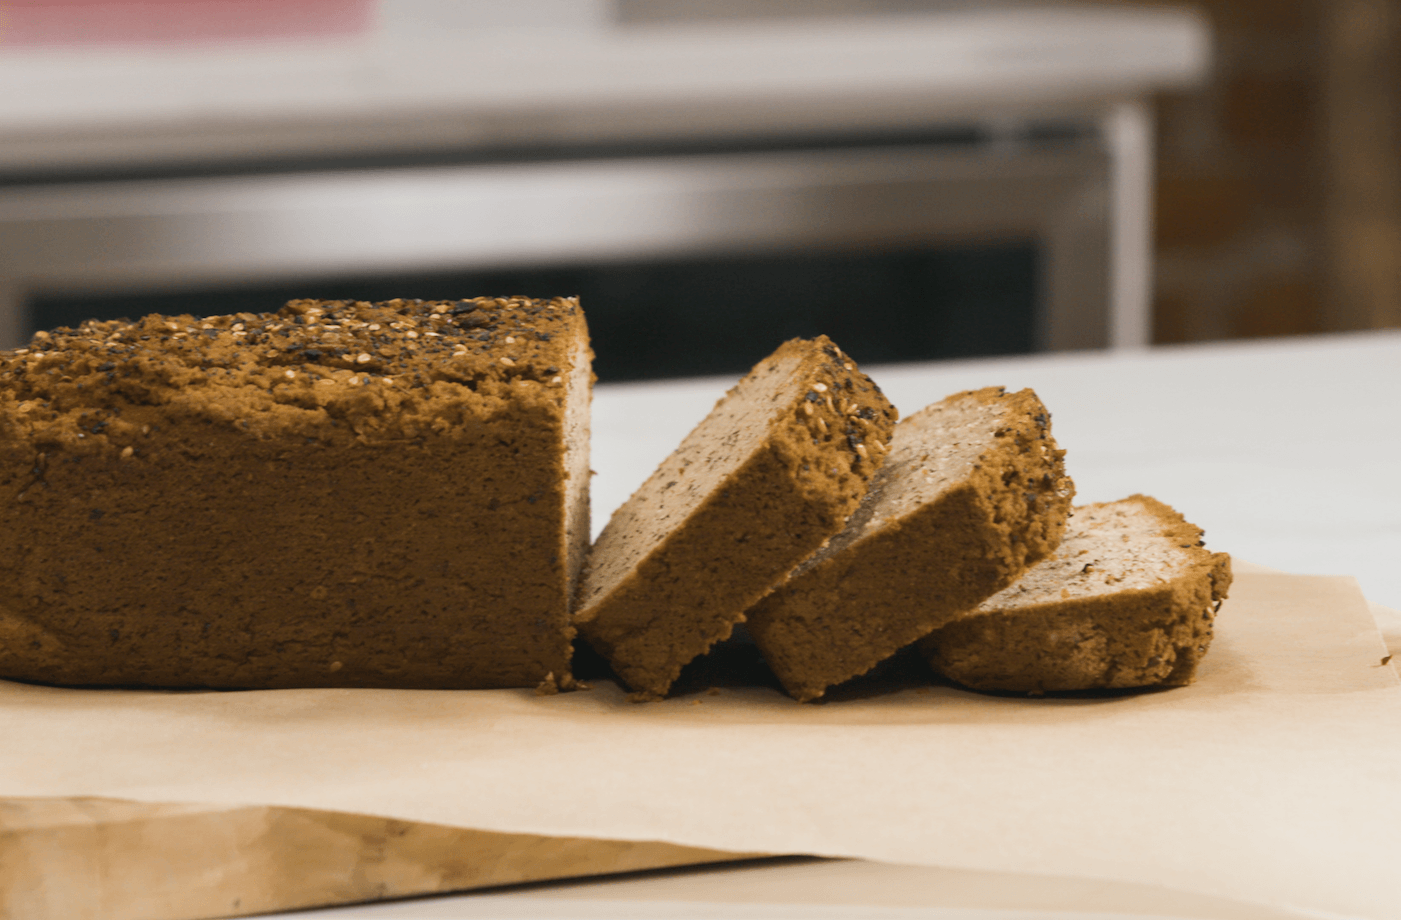 Easy Paleo bread recipe that tastes delicious | Well+Good